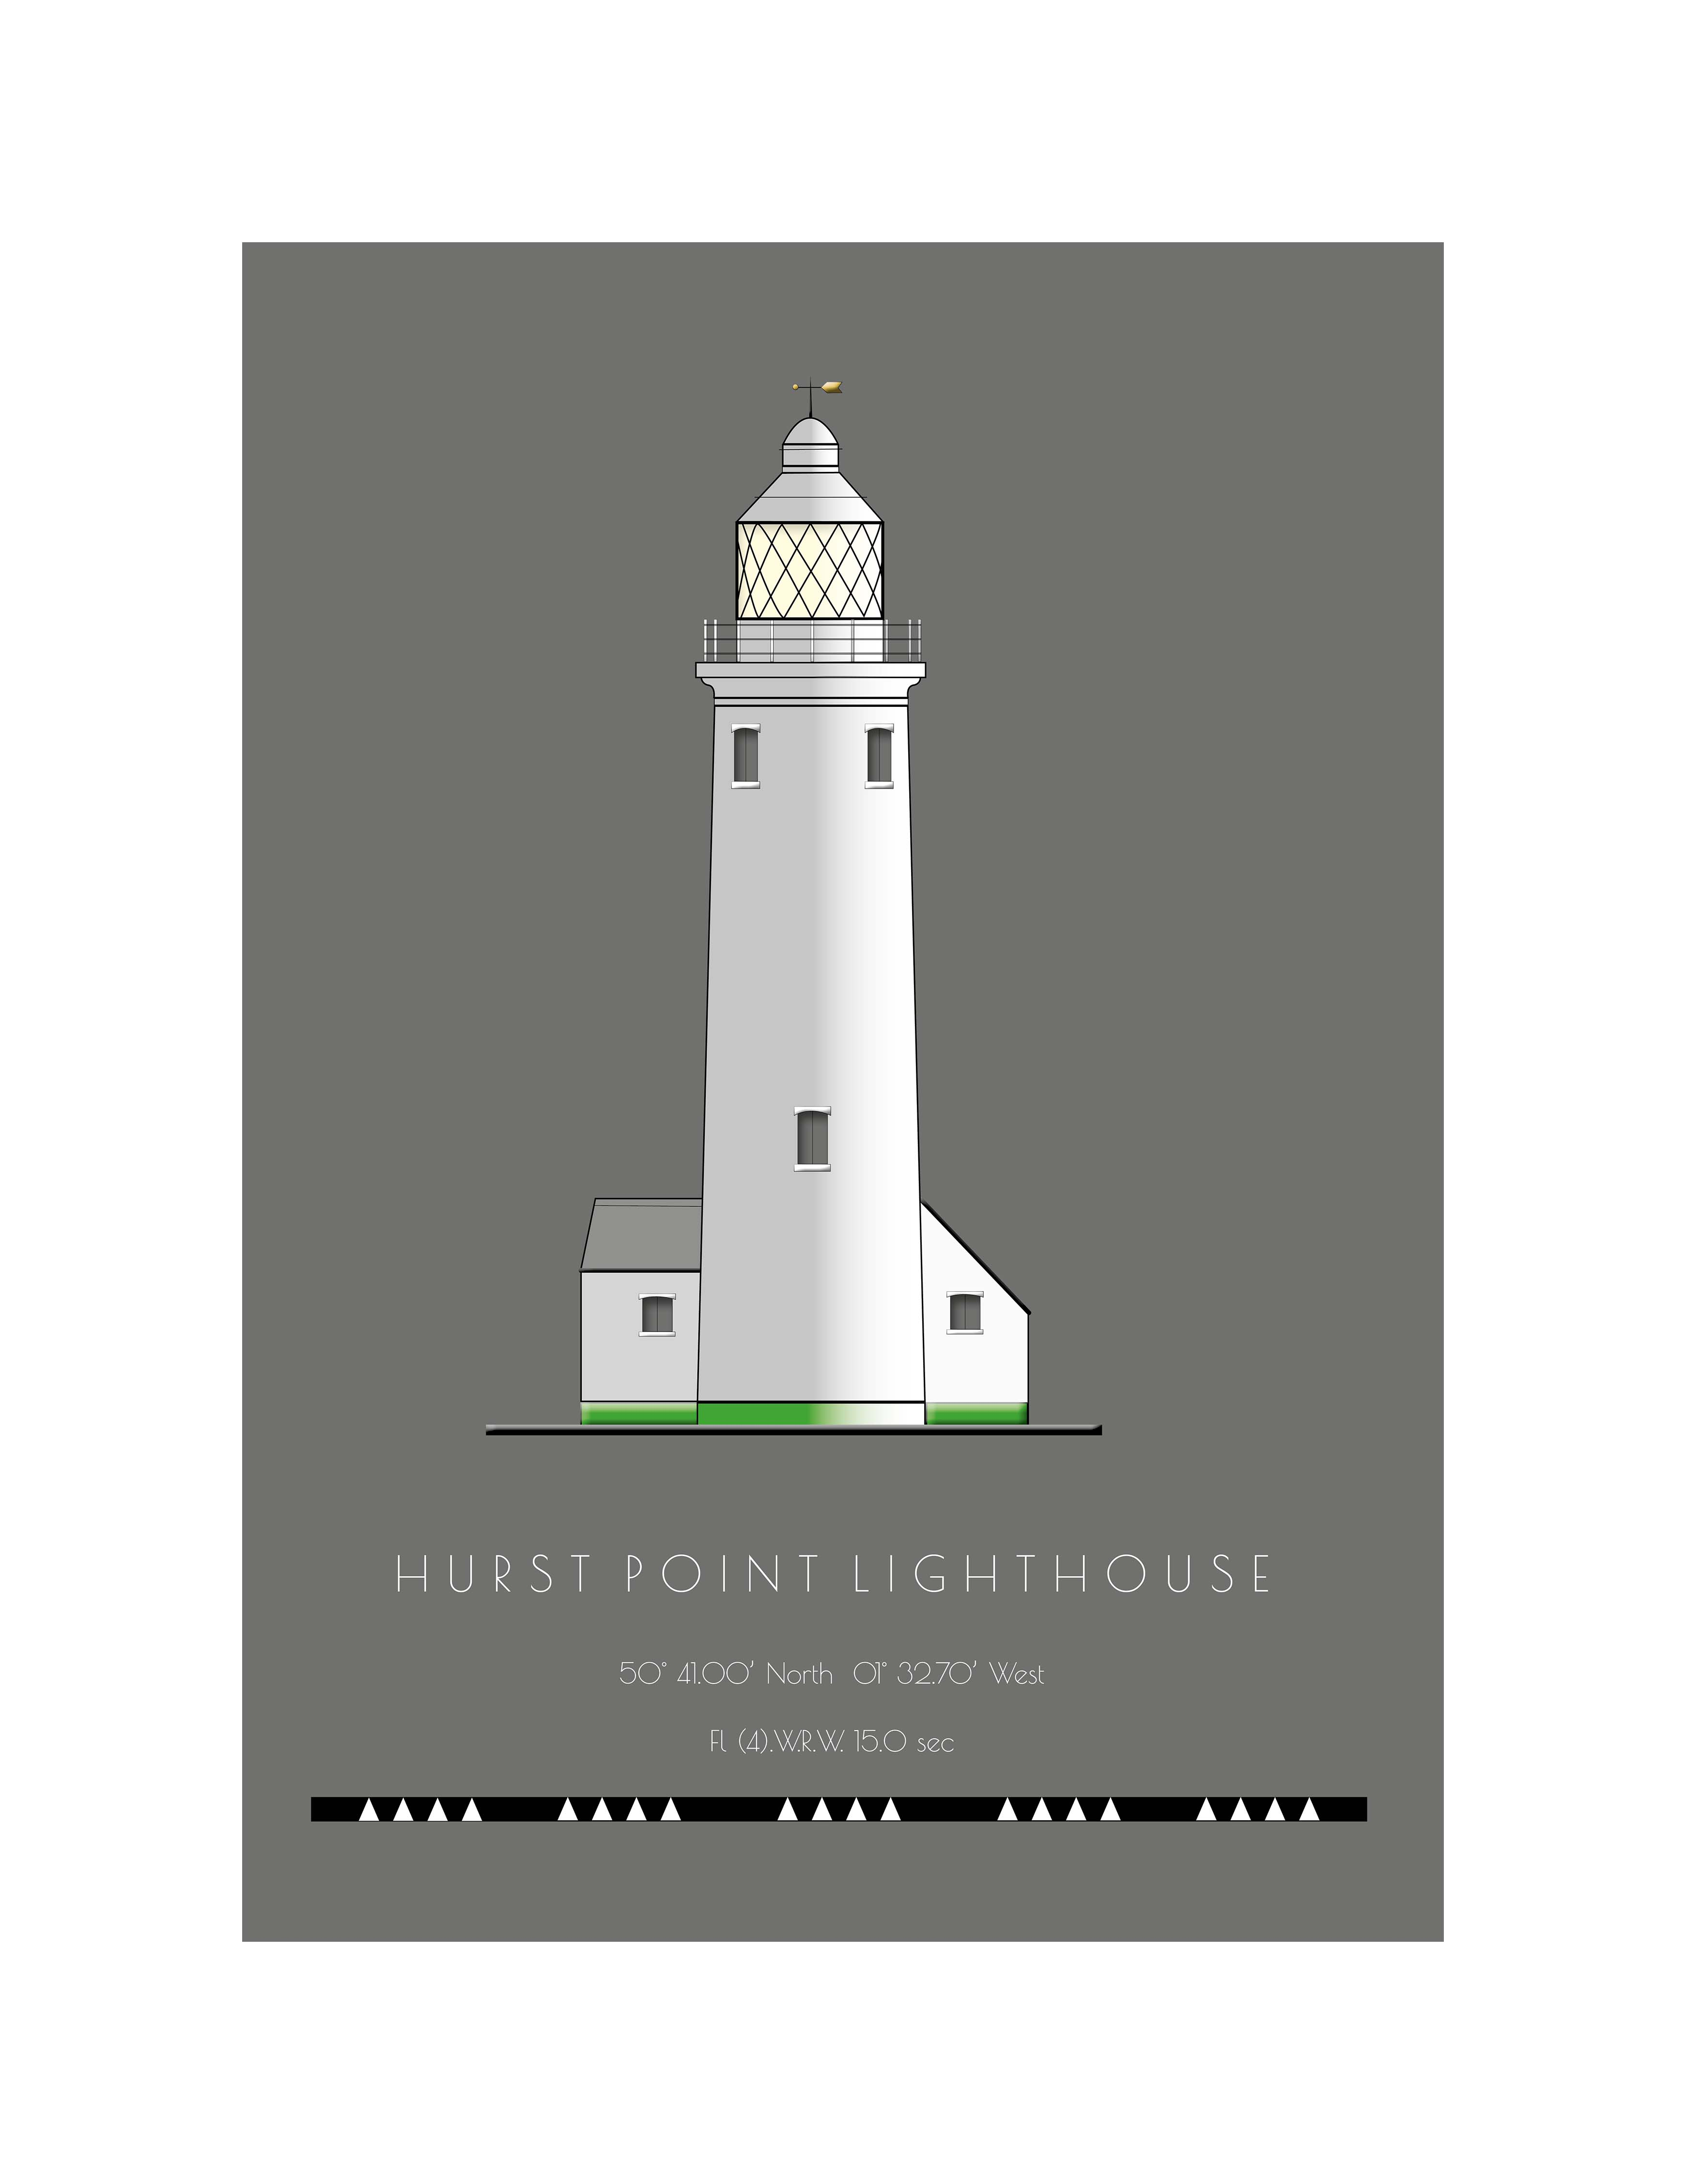 Hurst Point Lighthouse - Single Postcard